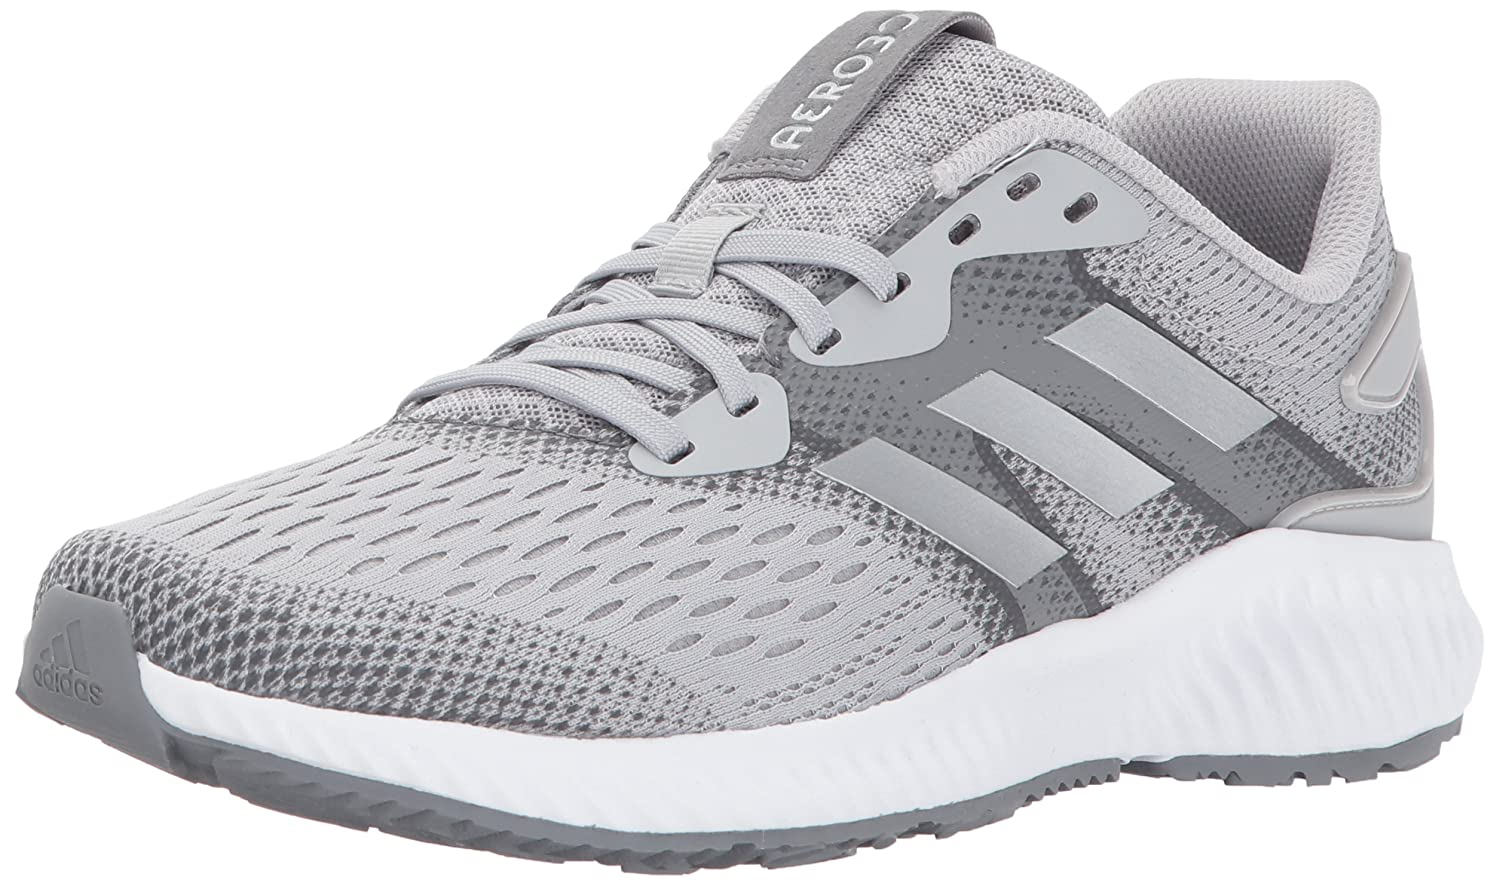 adidas Women's Aerobounce W Running Shoe B01N1JOYKW 6 B(M) US|Grey Two/Metallic Silver/Grey Five